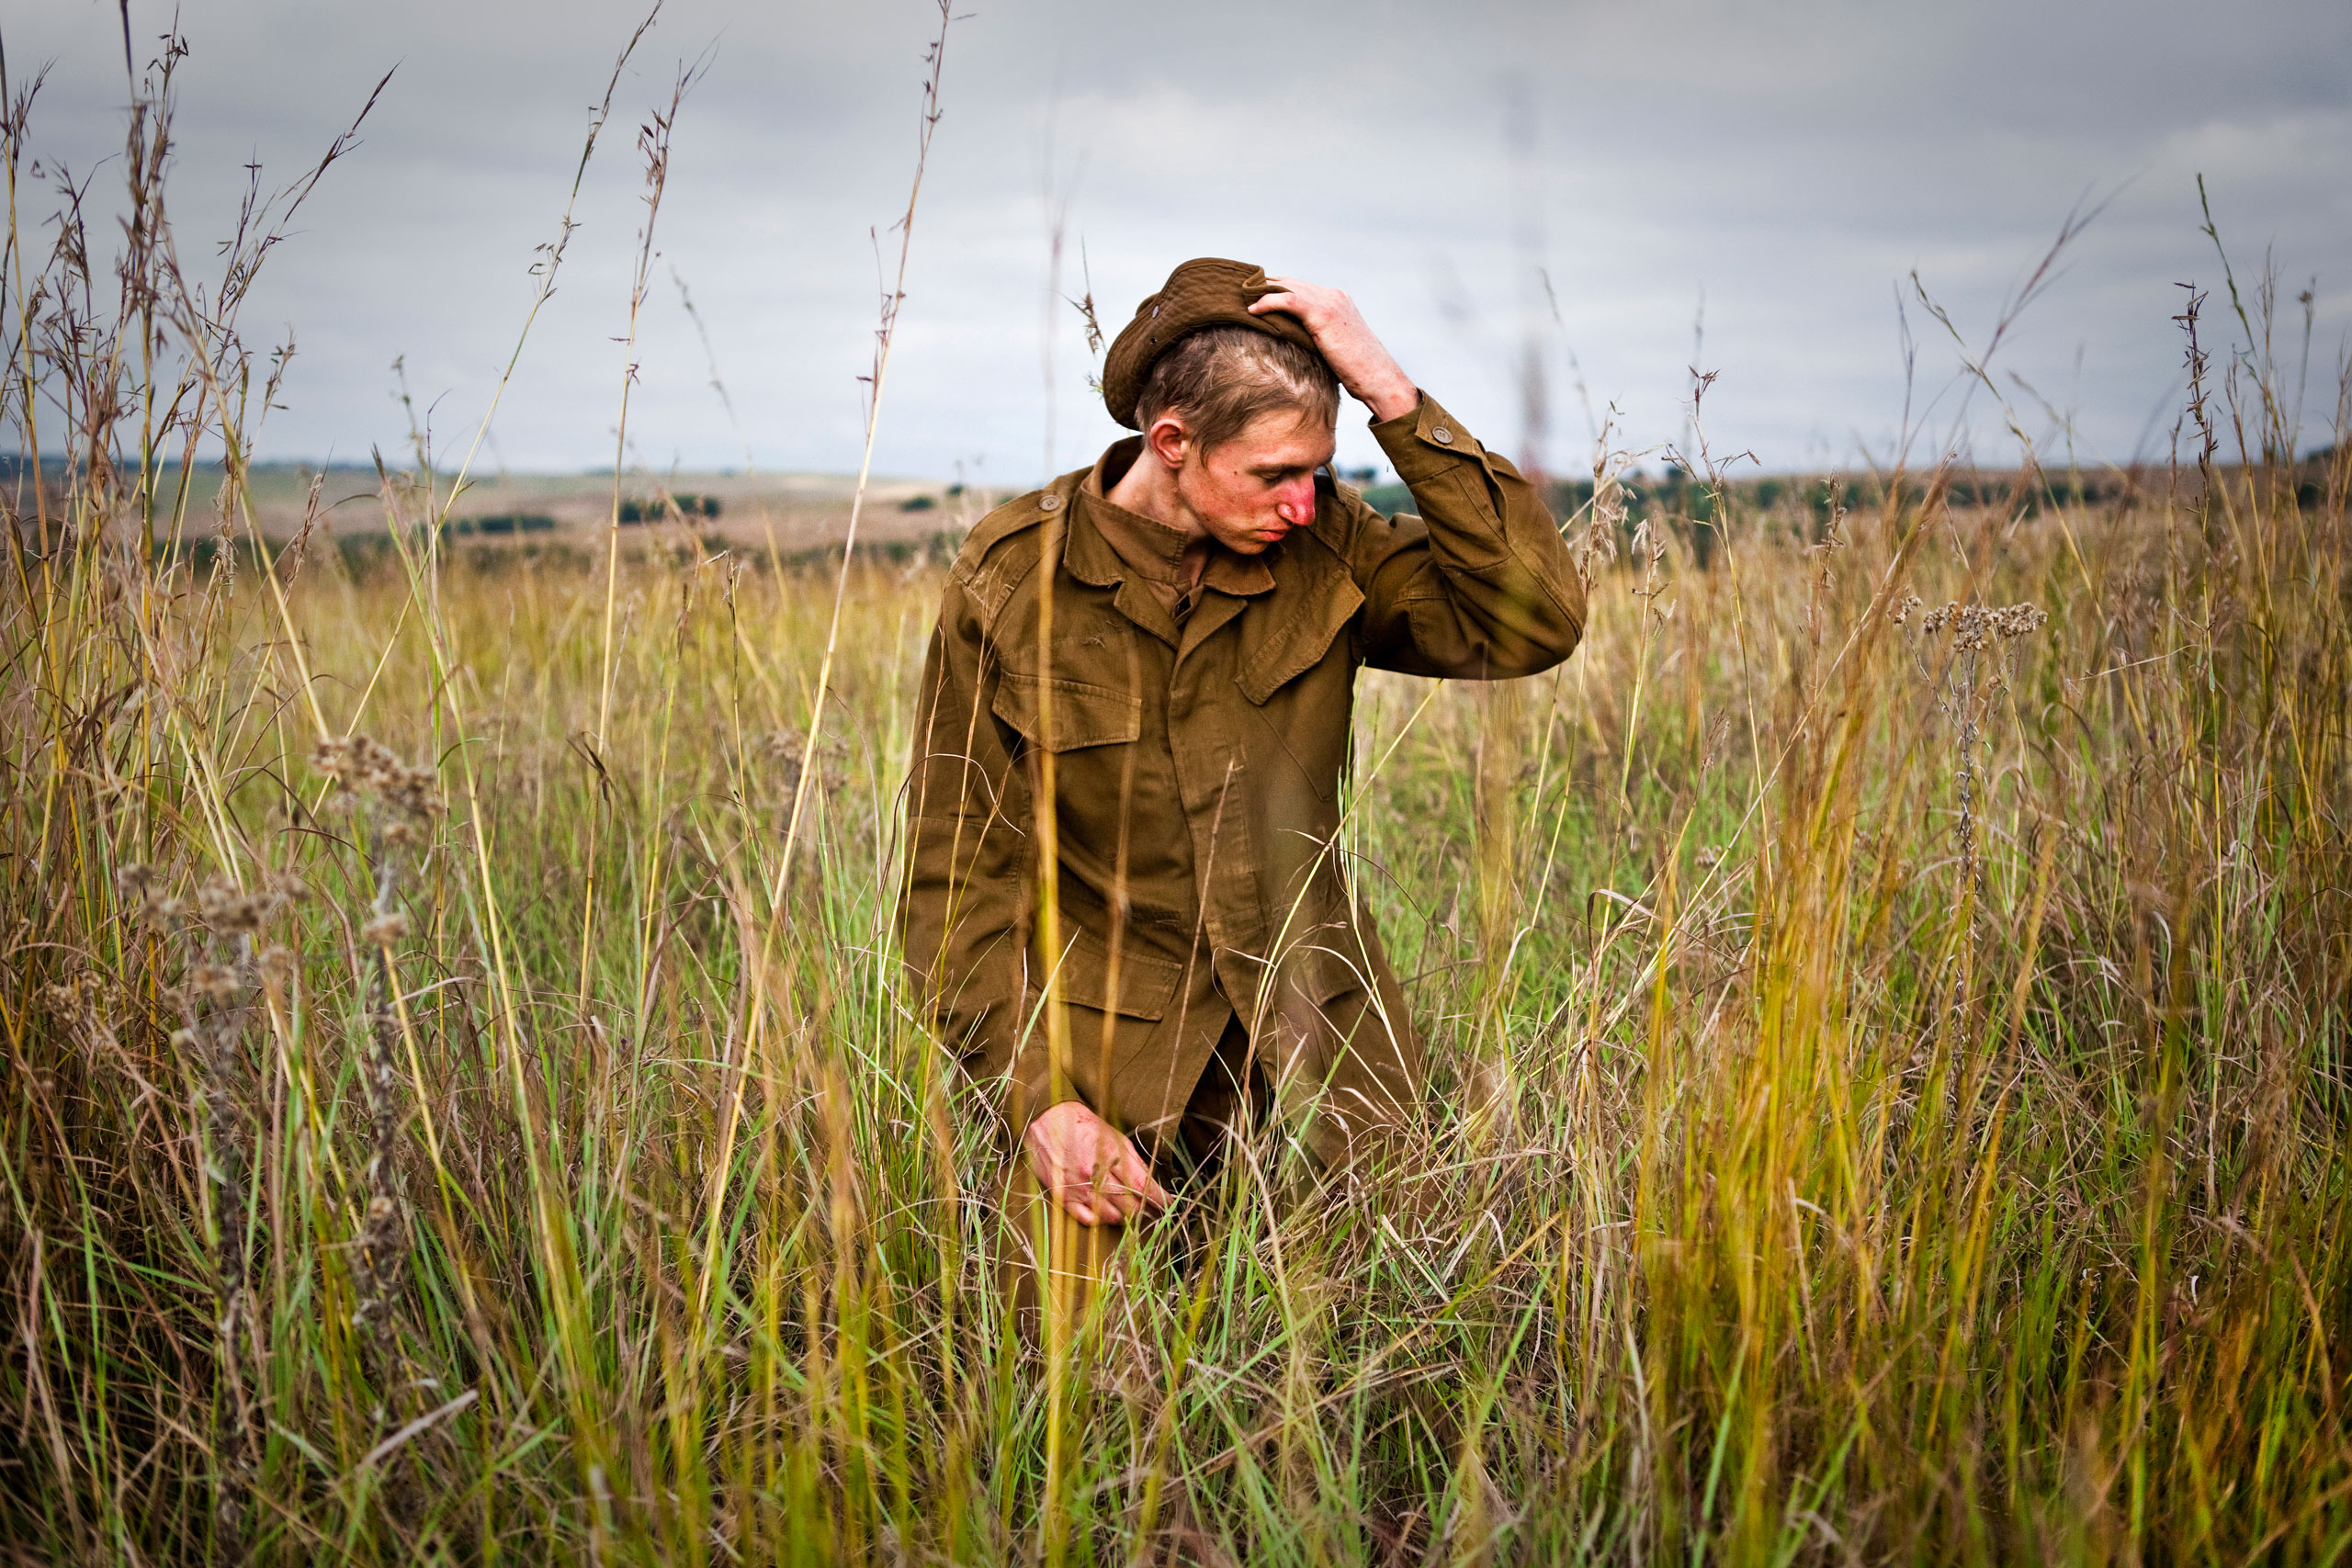 Riaan, one of the boys sits on his knees in a field at the end of an exercise.